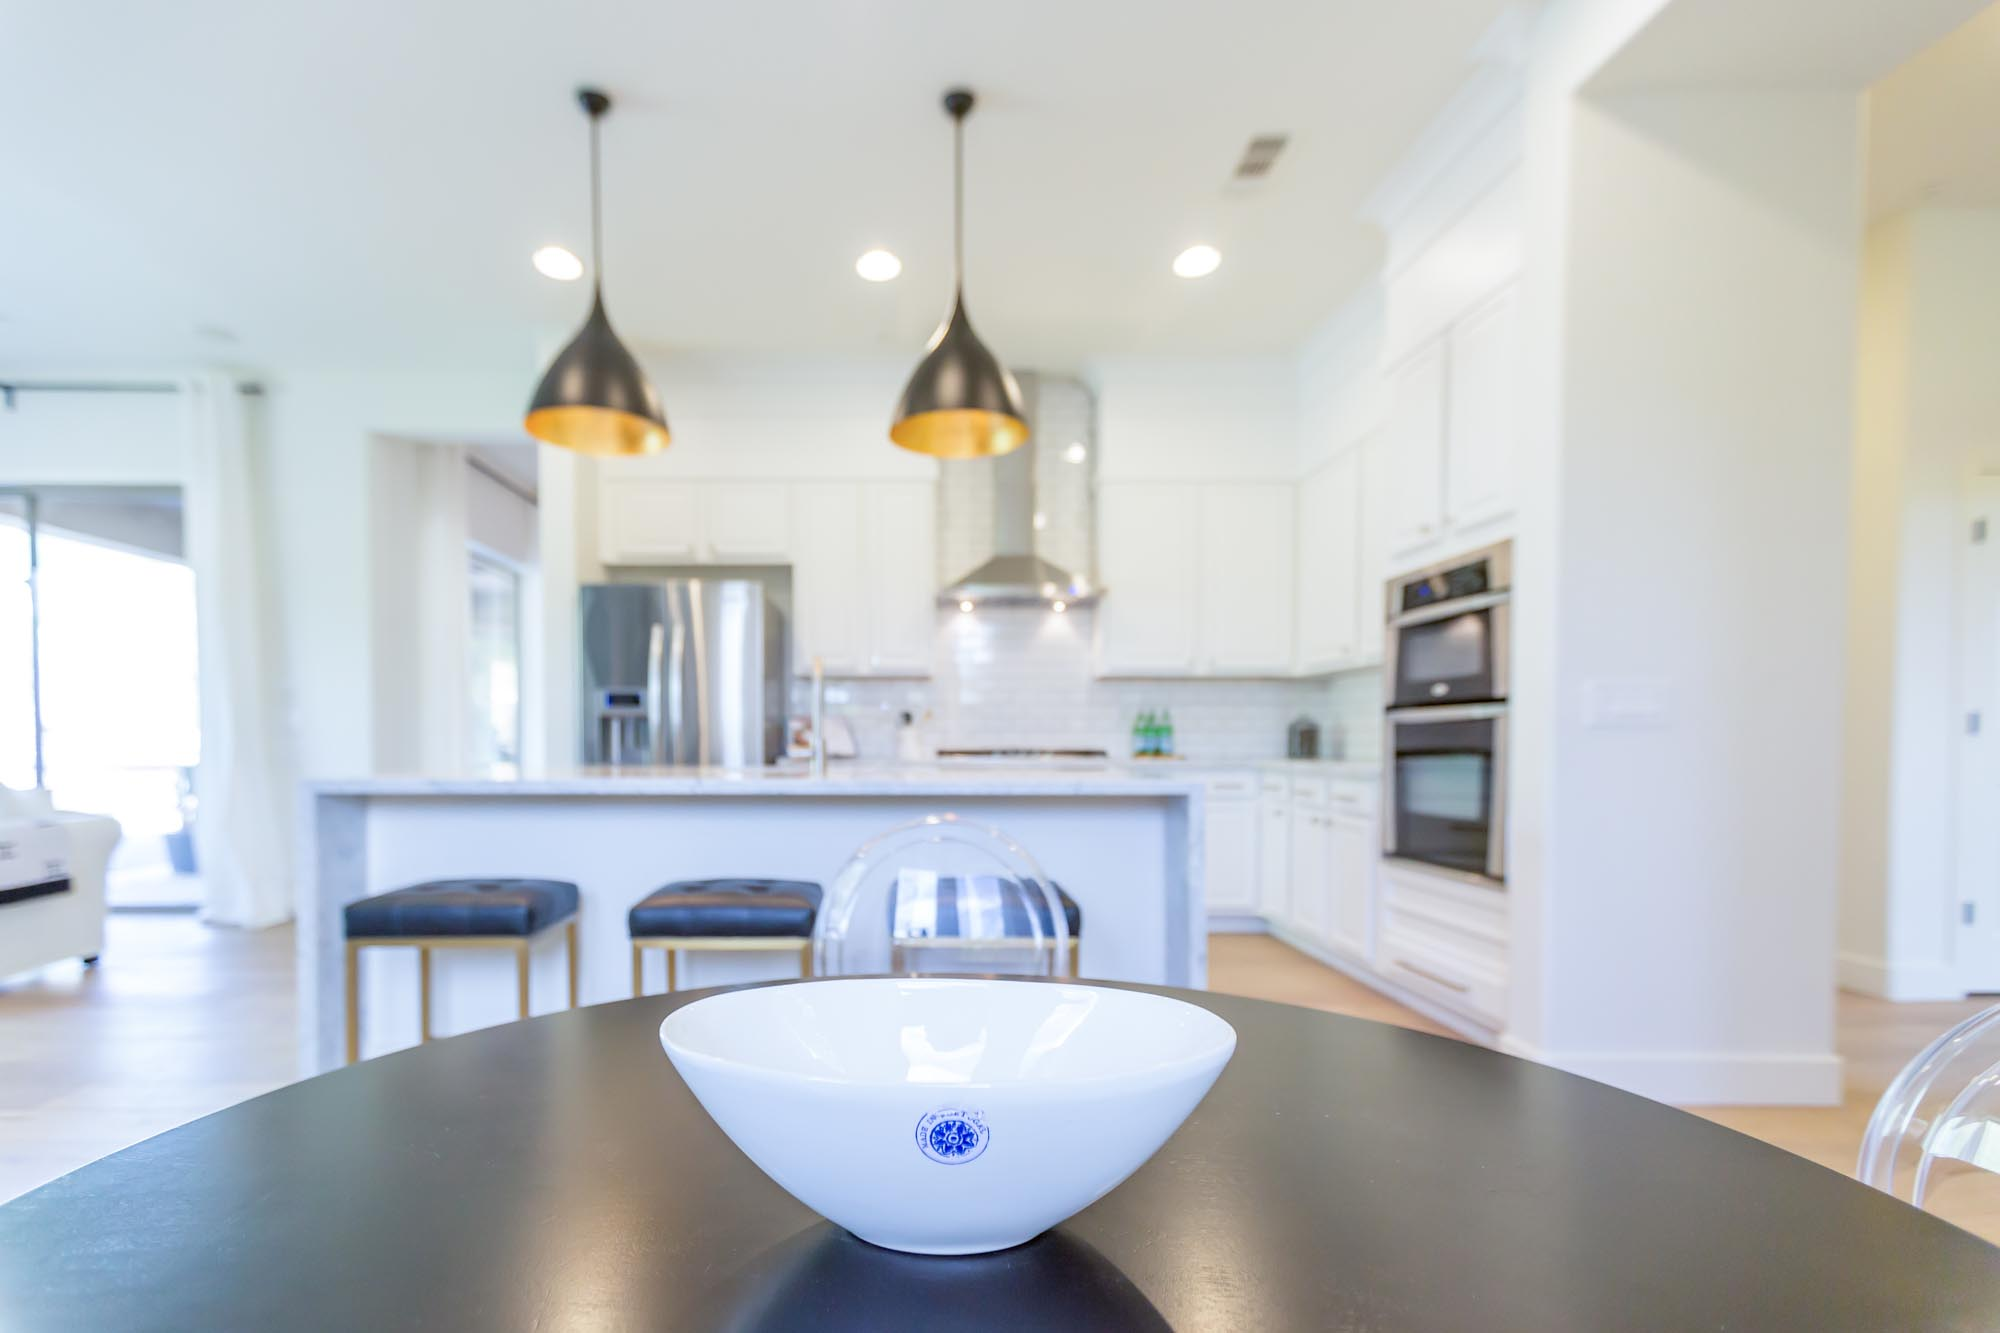 Kitchen area with porcelain bowl on a table